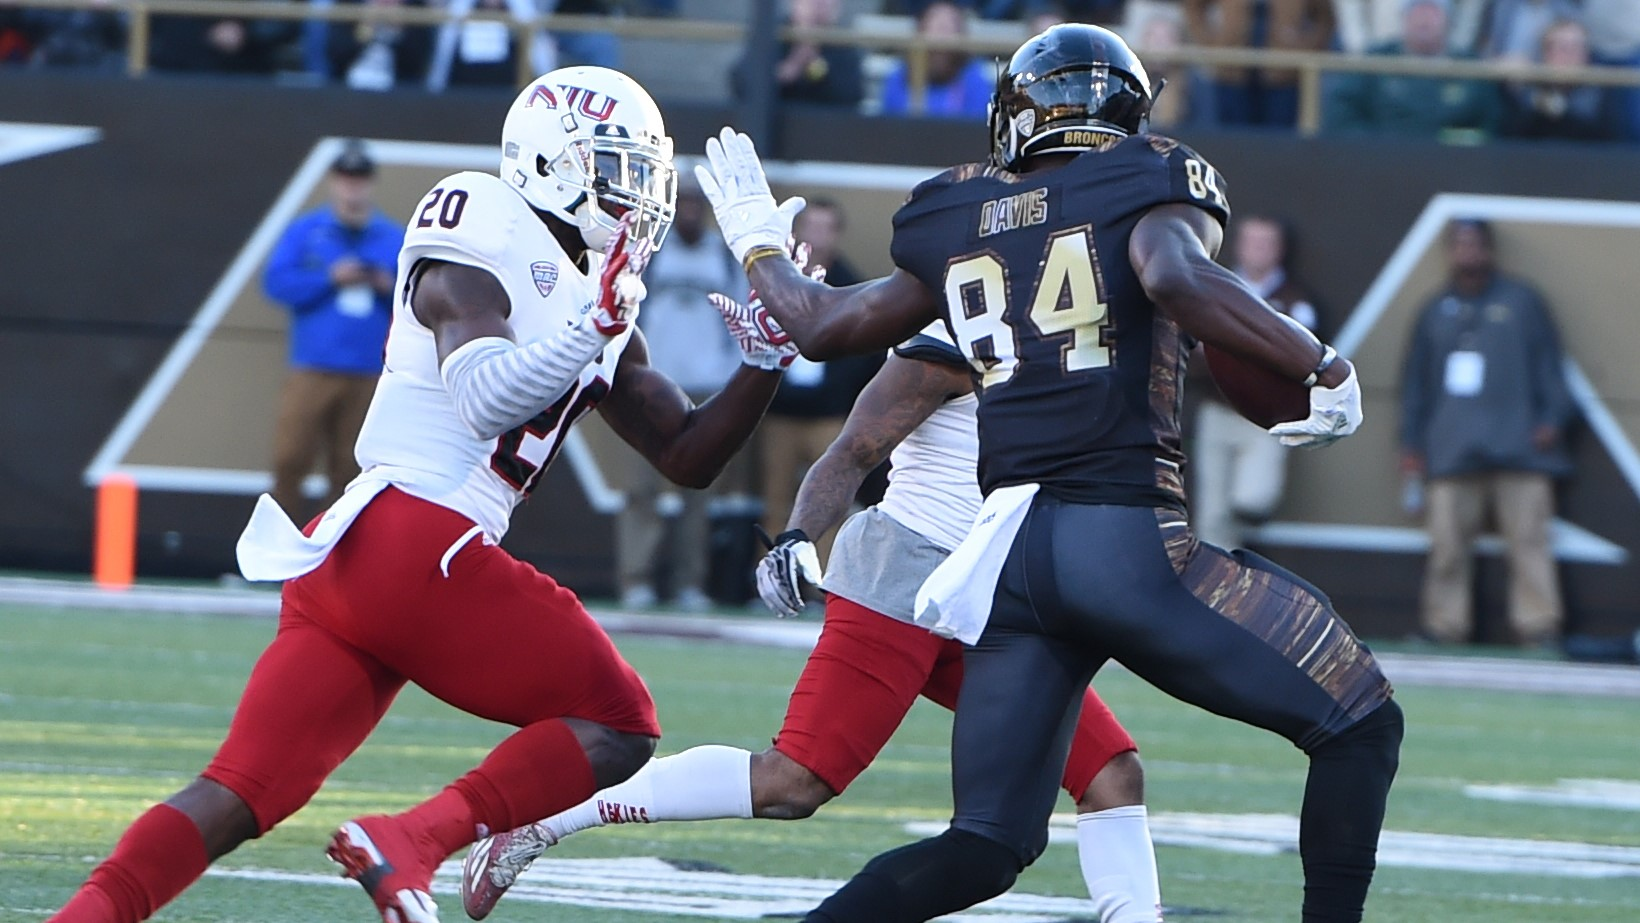 WMU Moves to 6-0, Bowl Eligible After Win Over Northern